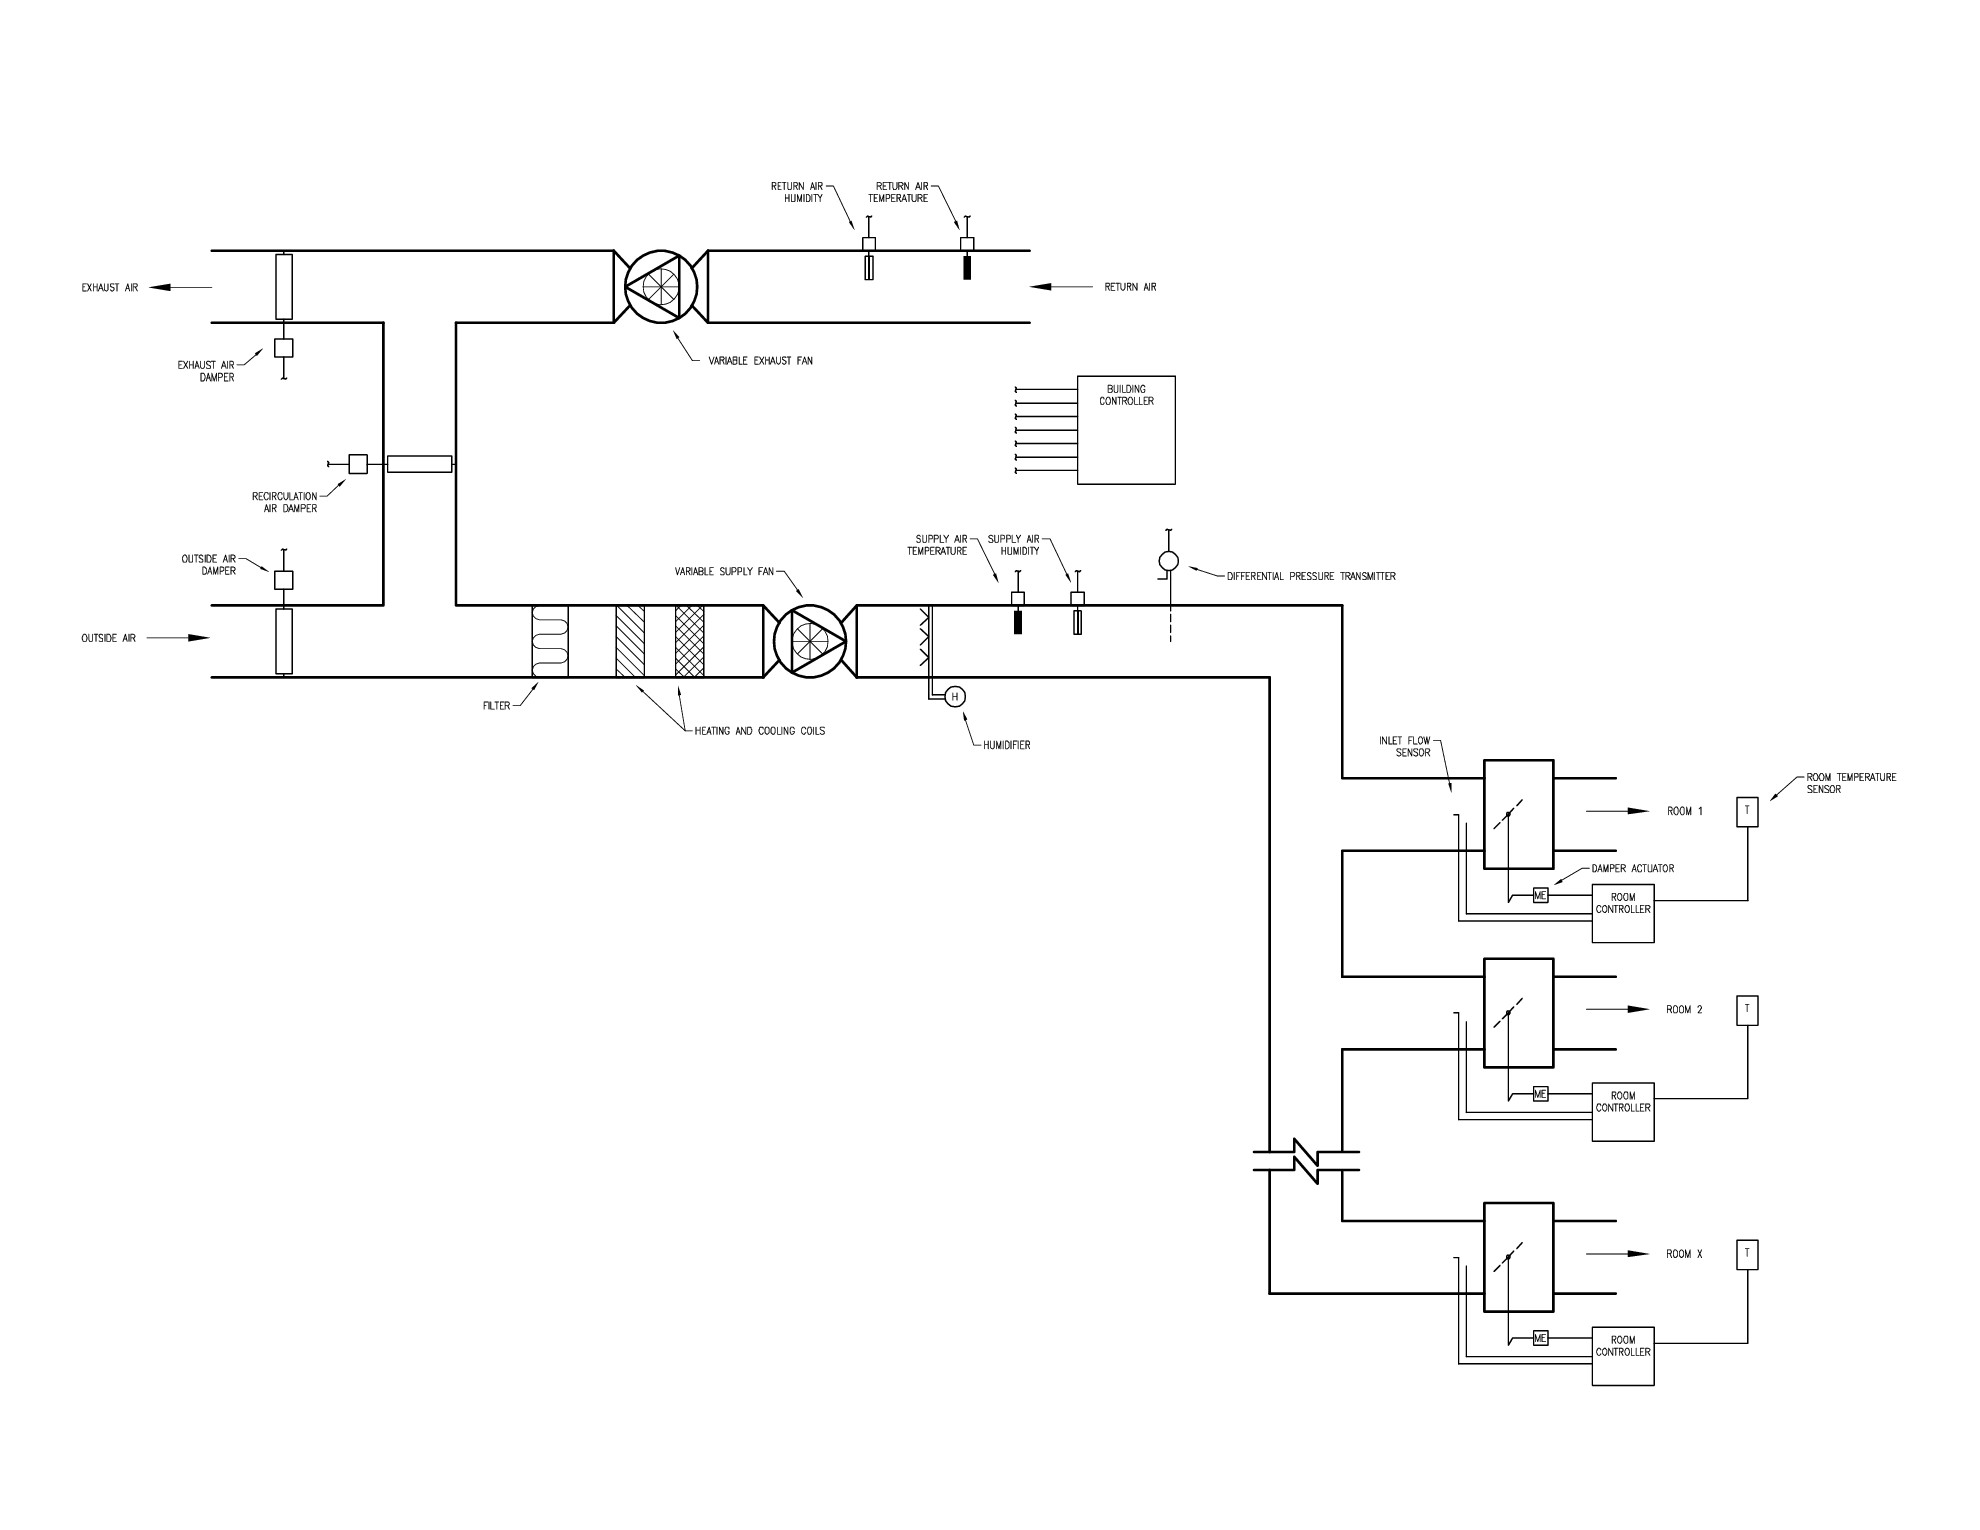 Danfoss Wiring Diagram - 24h schemes on copeland start winding motor schematic, compressor operation schematic, compressor diagram, copeland oil schematic, compressor filter schematic, breaker schematic, copeland compressor schematic, copeland condenser schematic, freezer schematic, compressor clutch schematic, compressor starting relay schematic, compressor motor schematic,